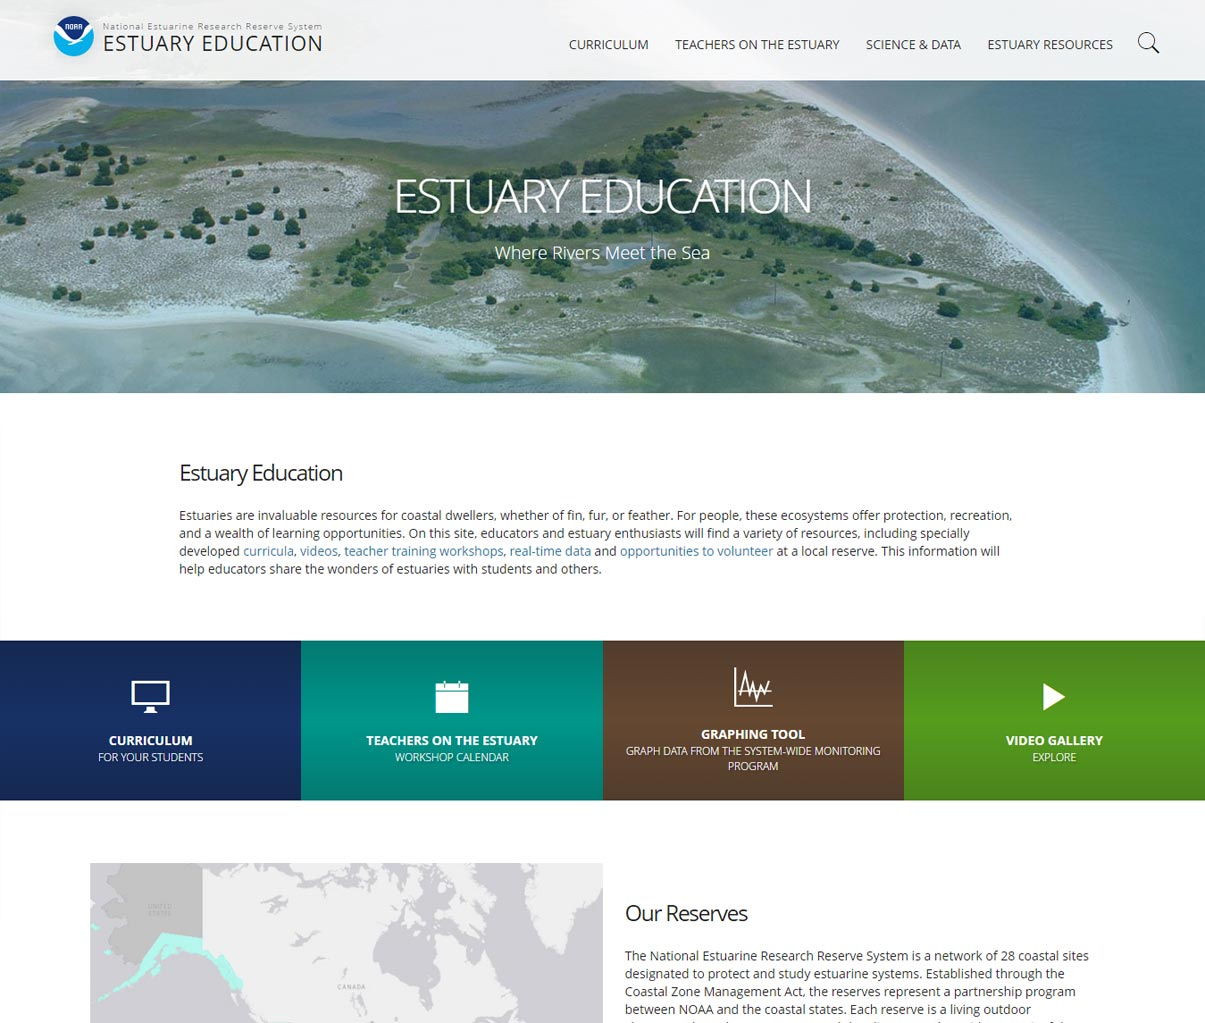 Screenshot of newly redesigned version of Estuary Education website